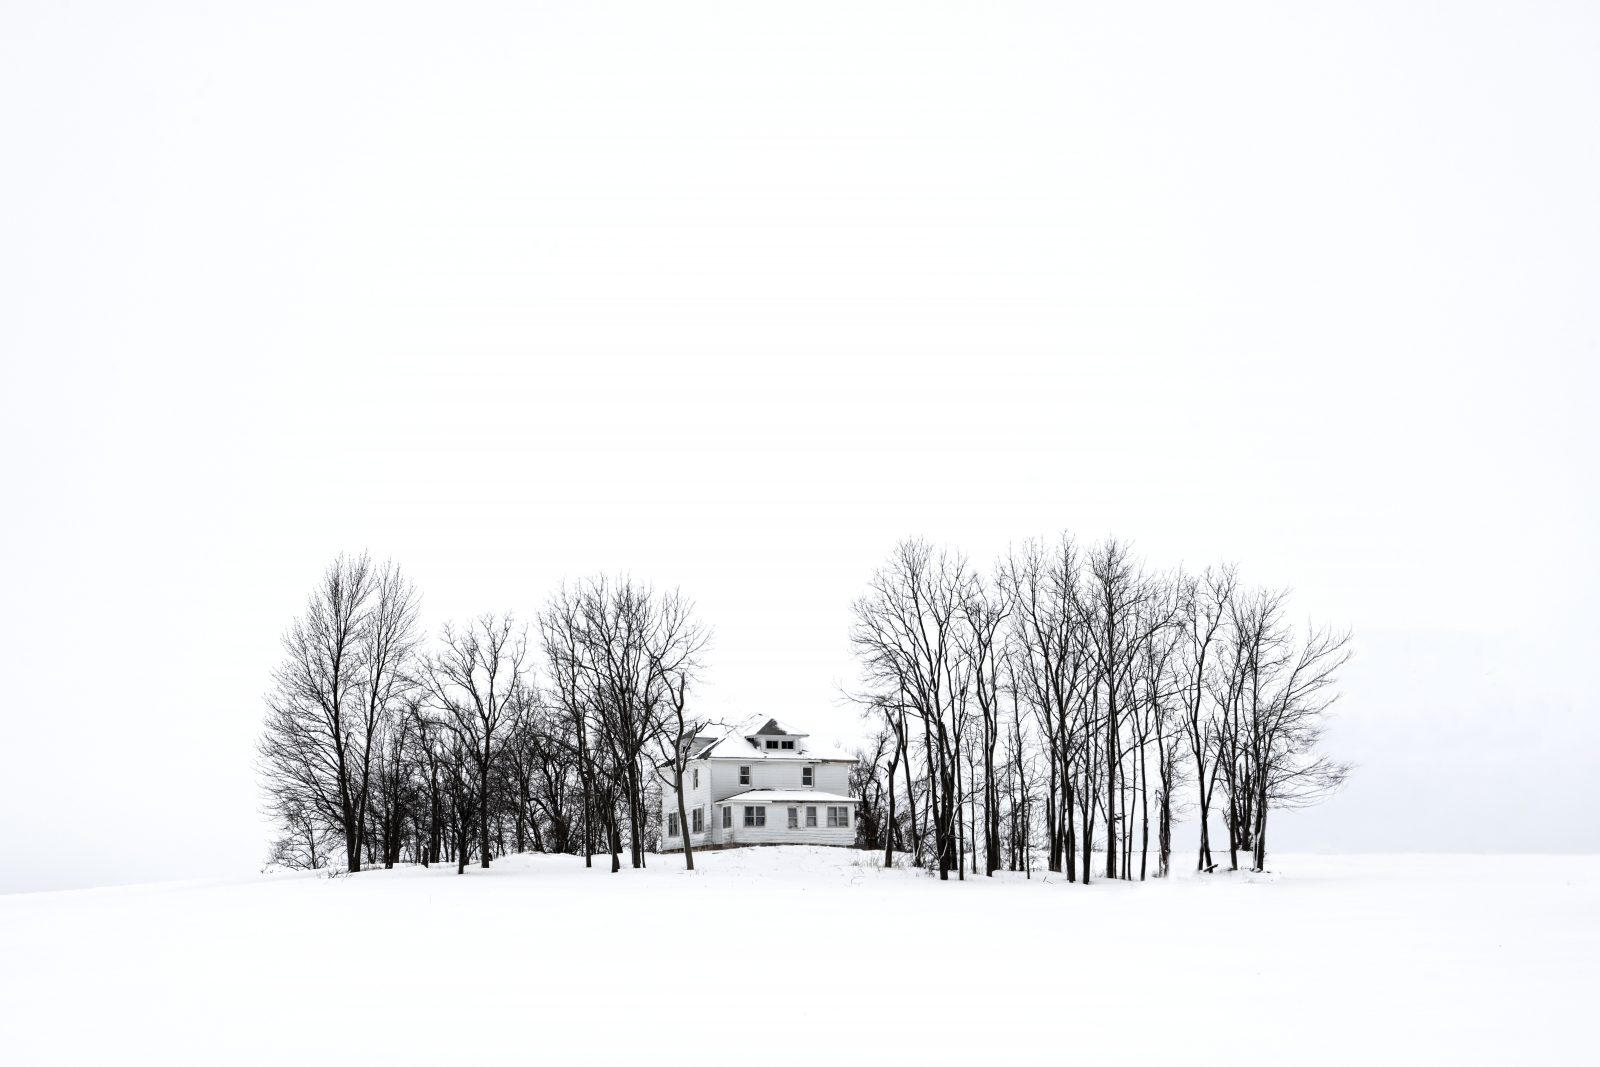 An Island in a Sea of White